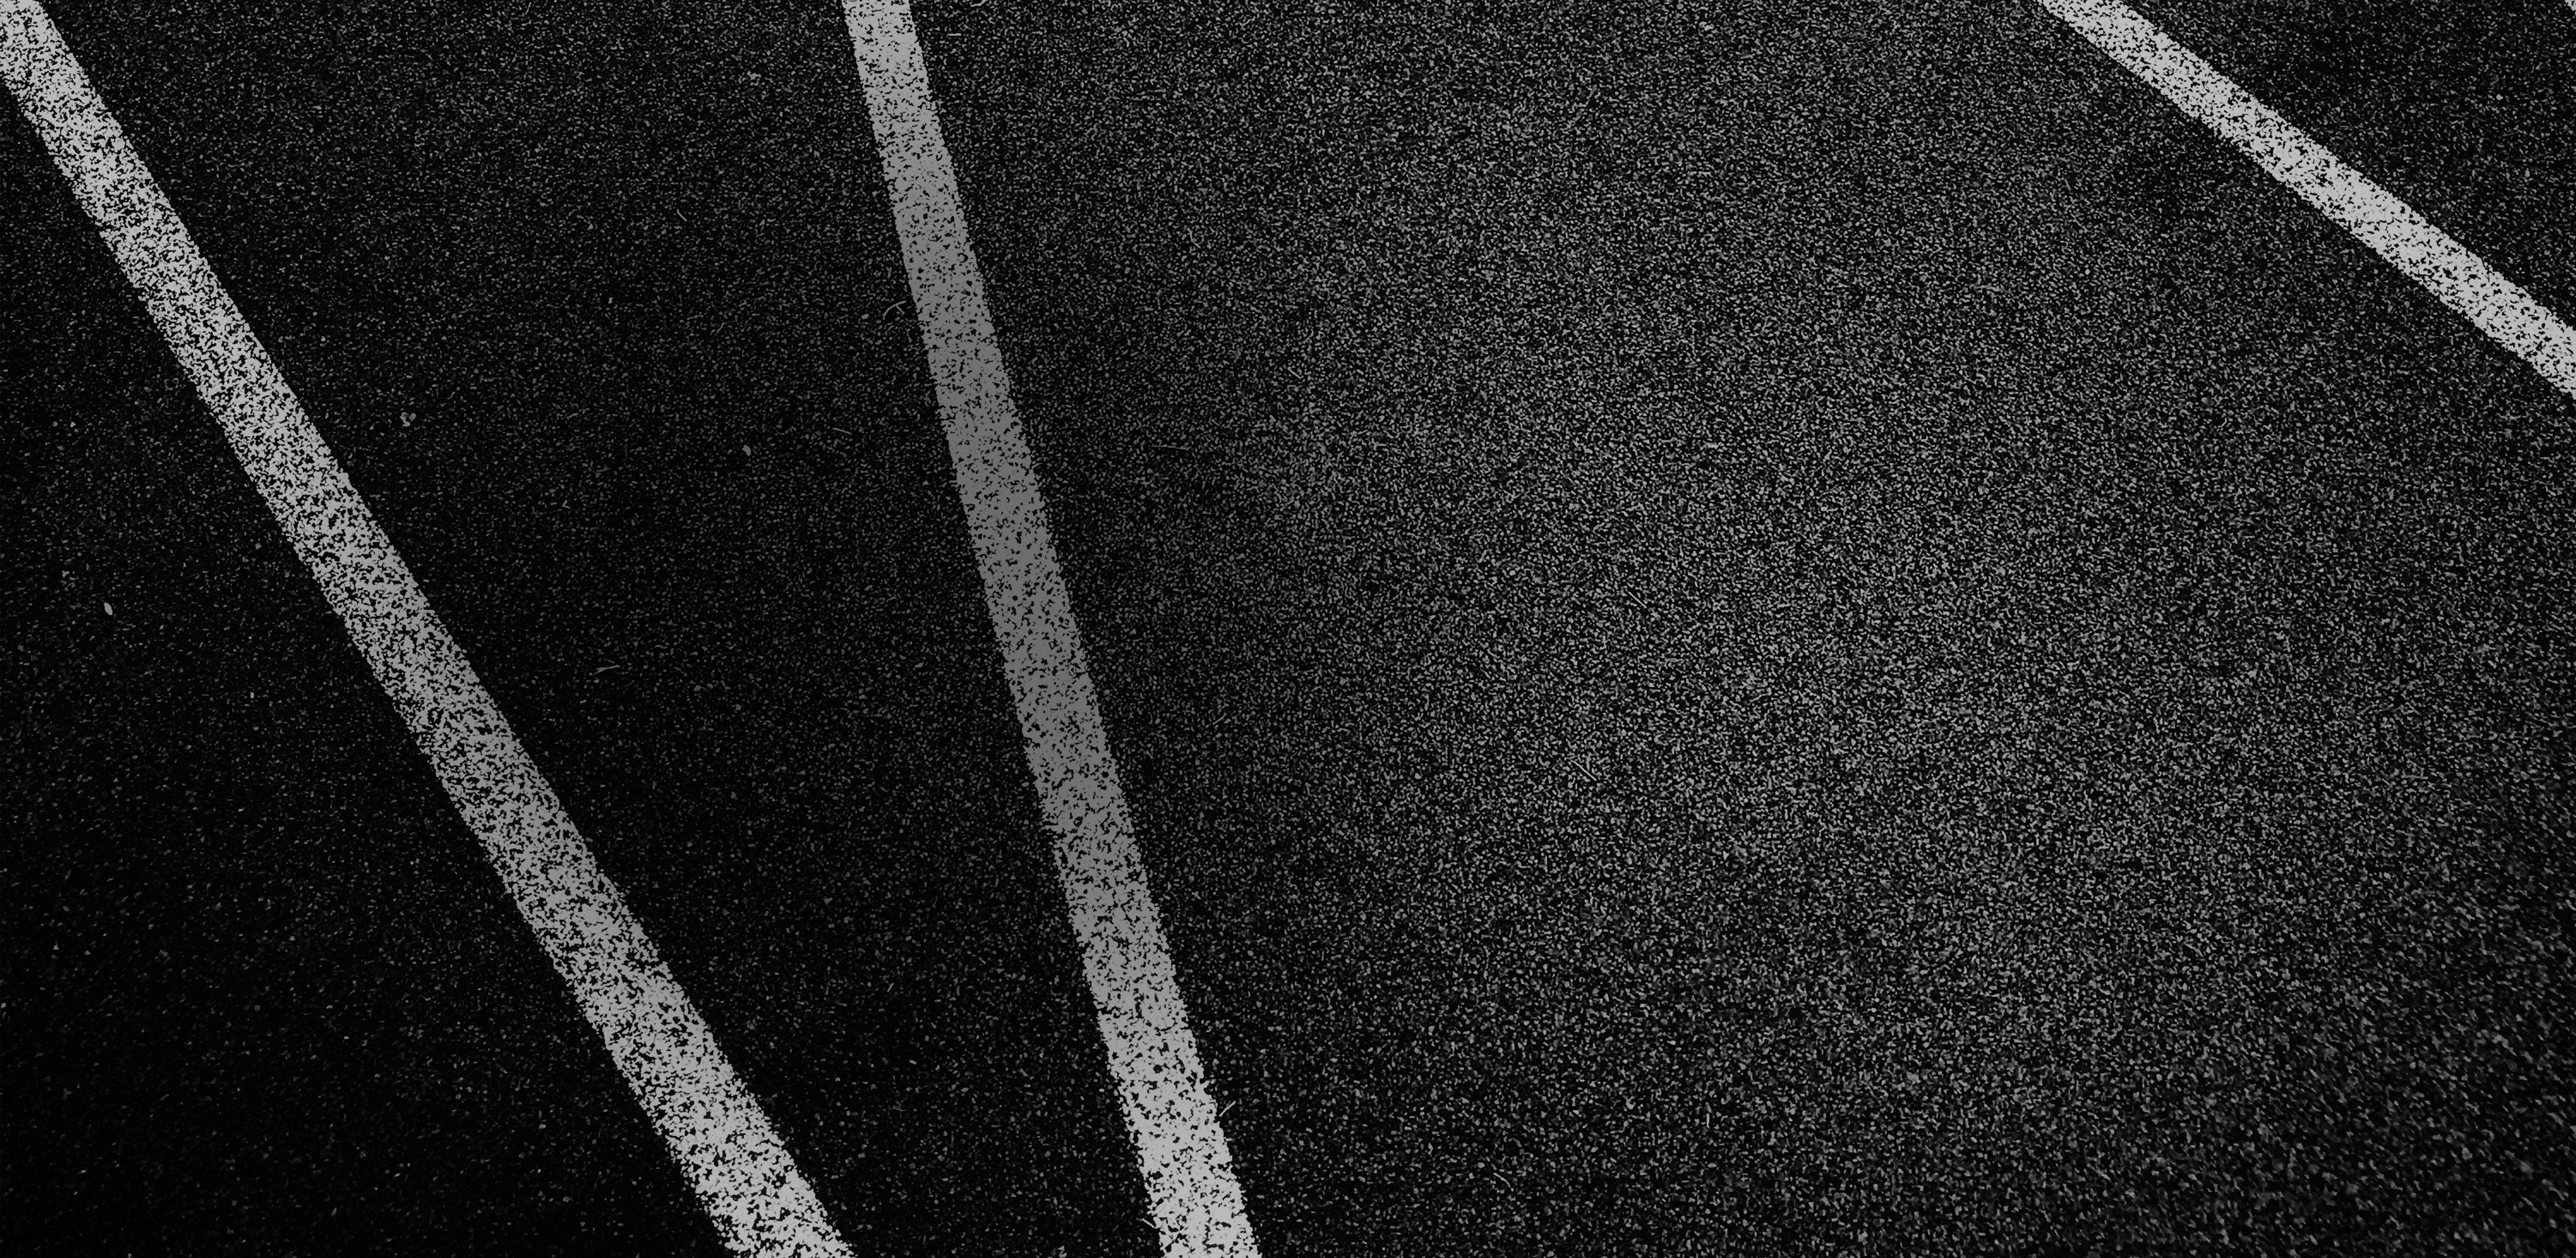 Pavement dark